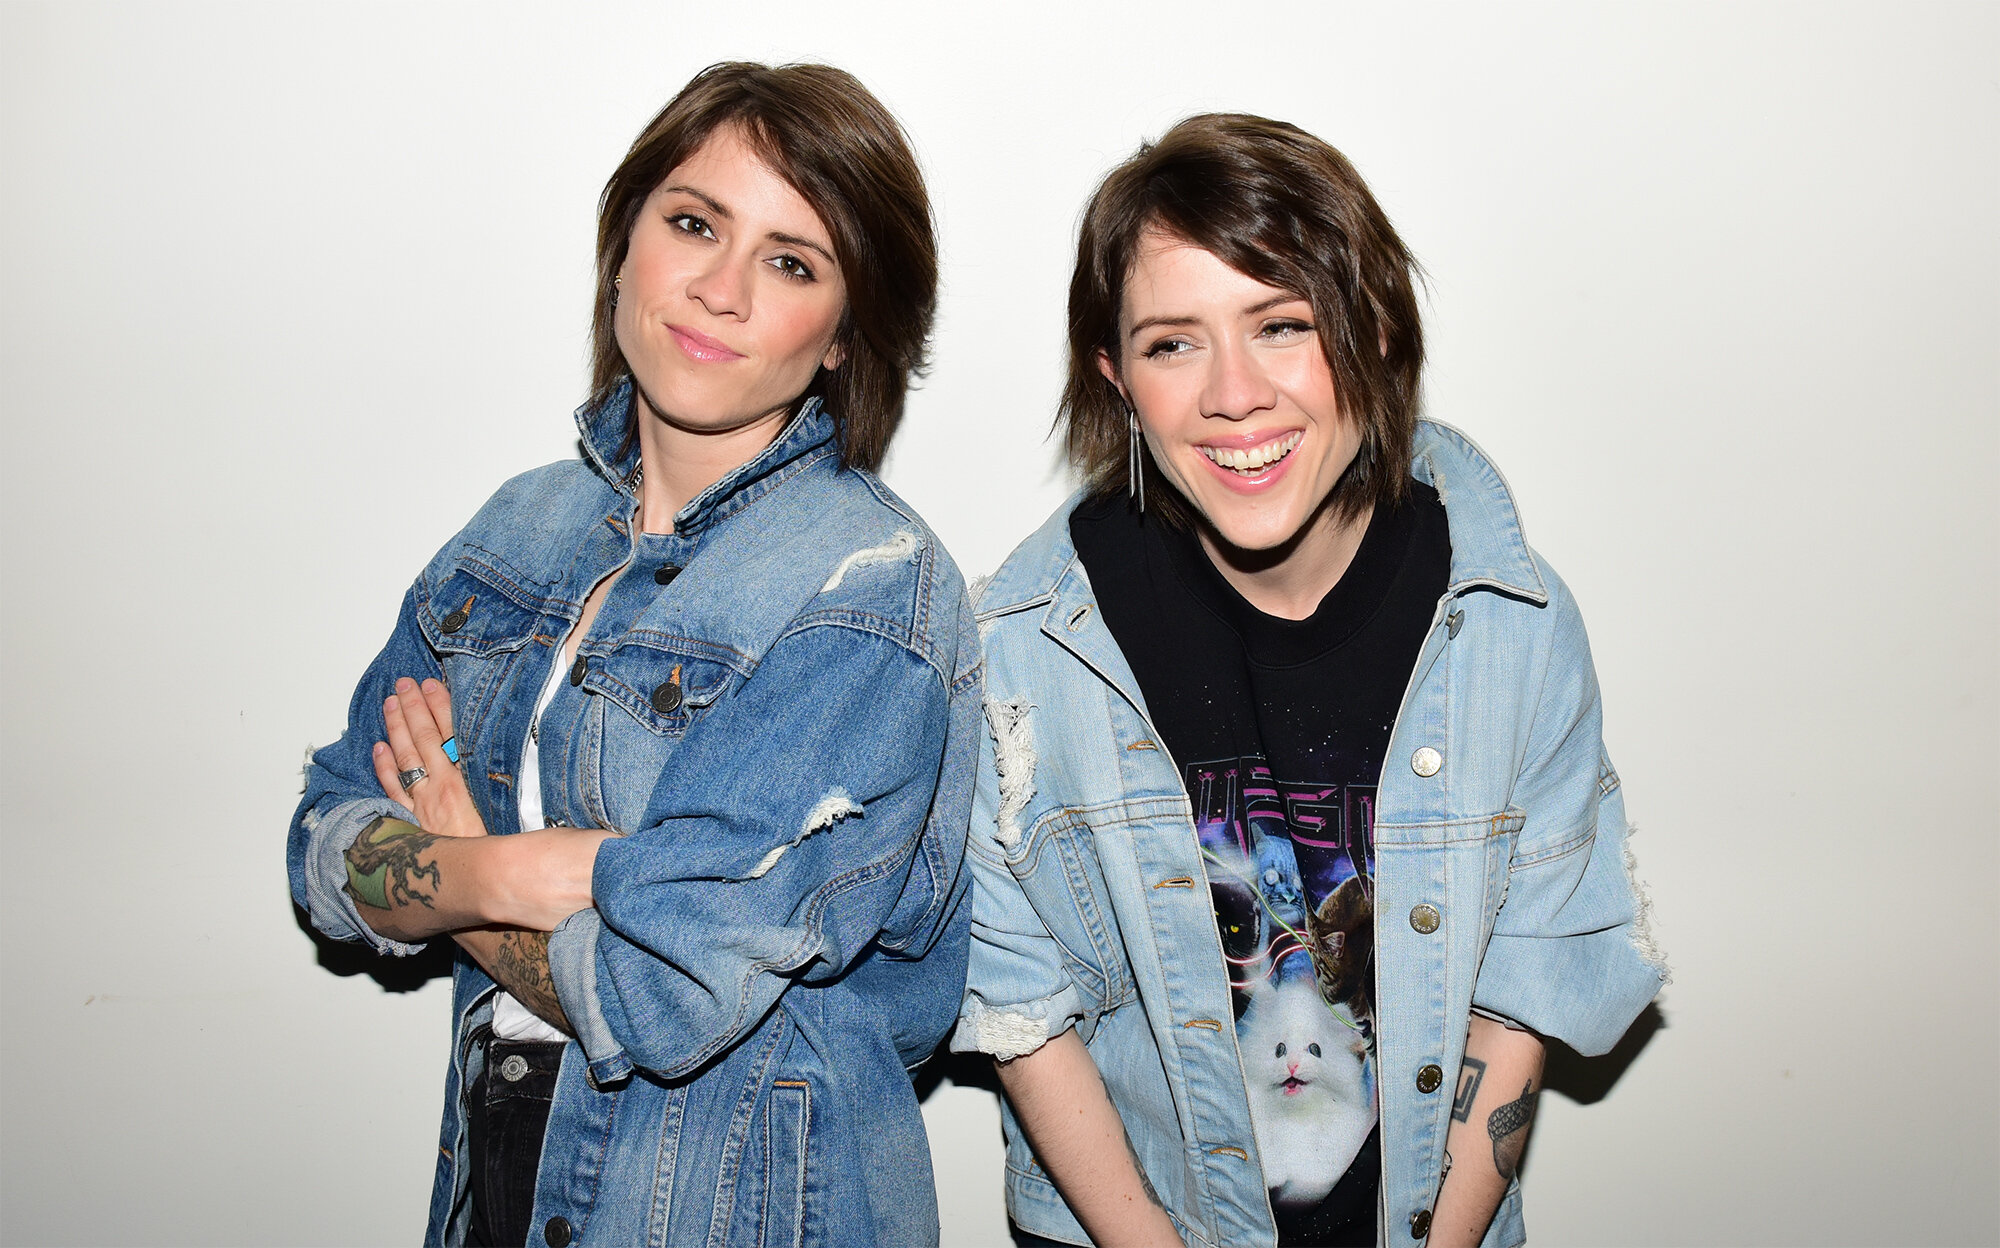 TeganAndSara-photo.jpg